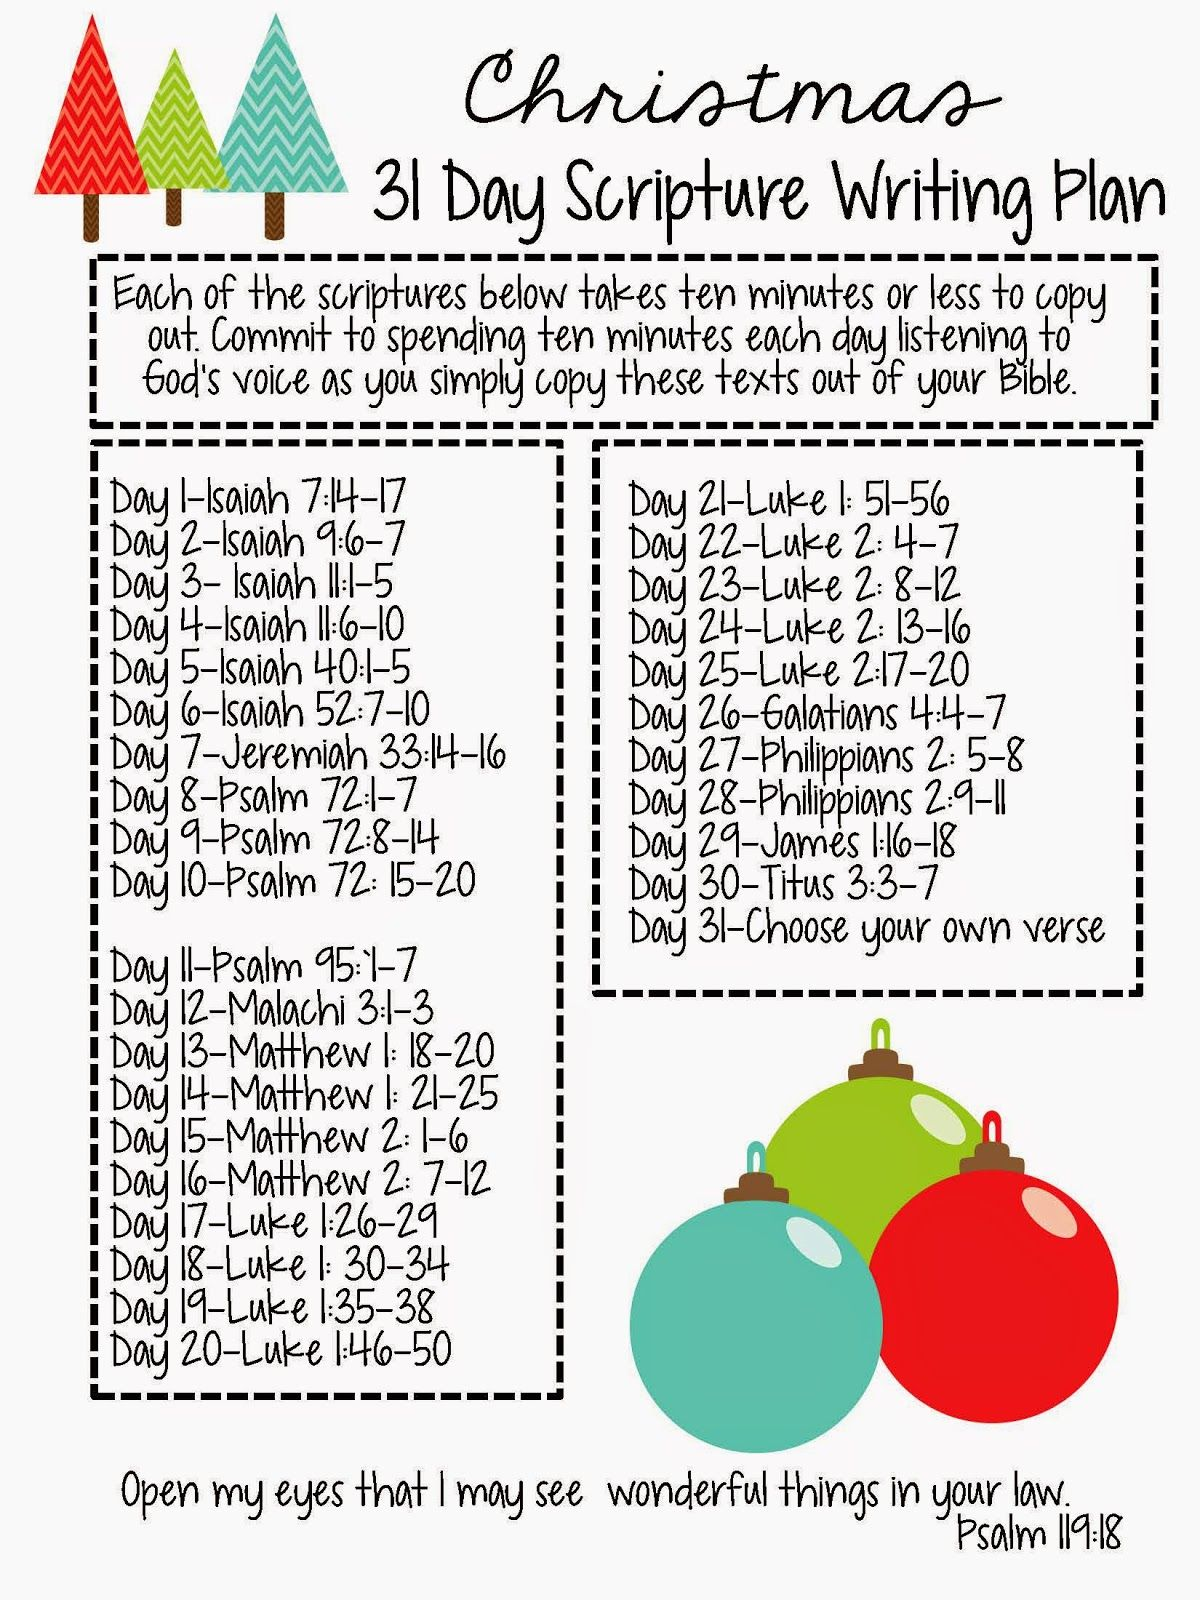 sweet blessings christmas scripture writing plan bible plan bible reading plans scripture reading